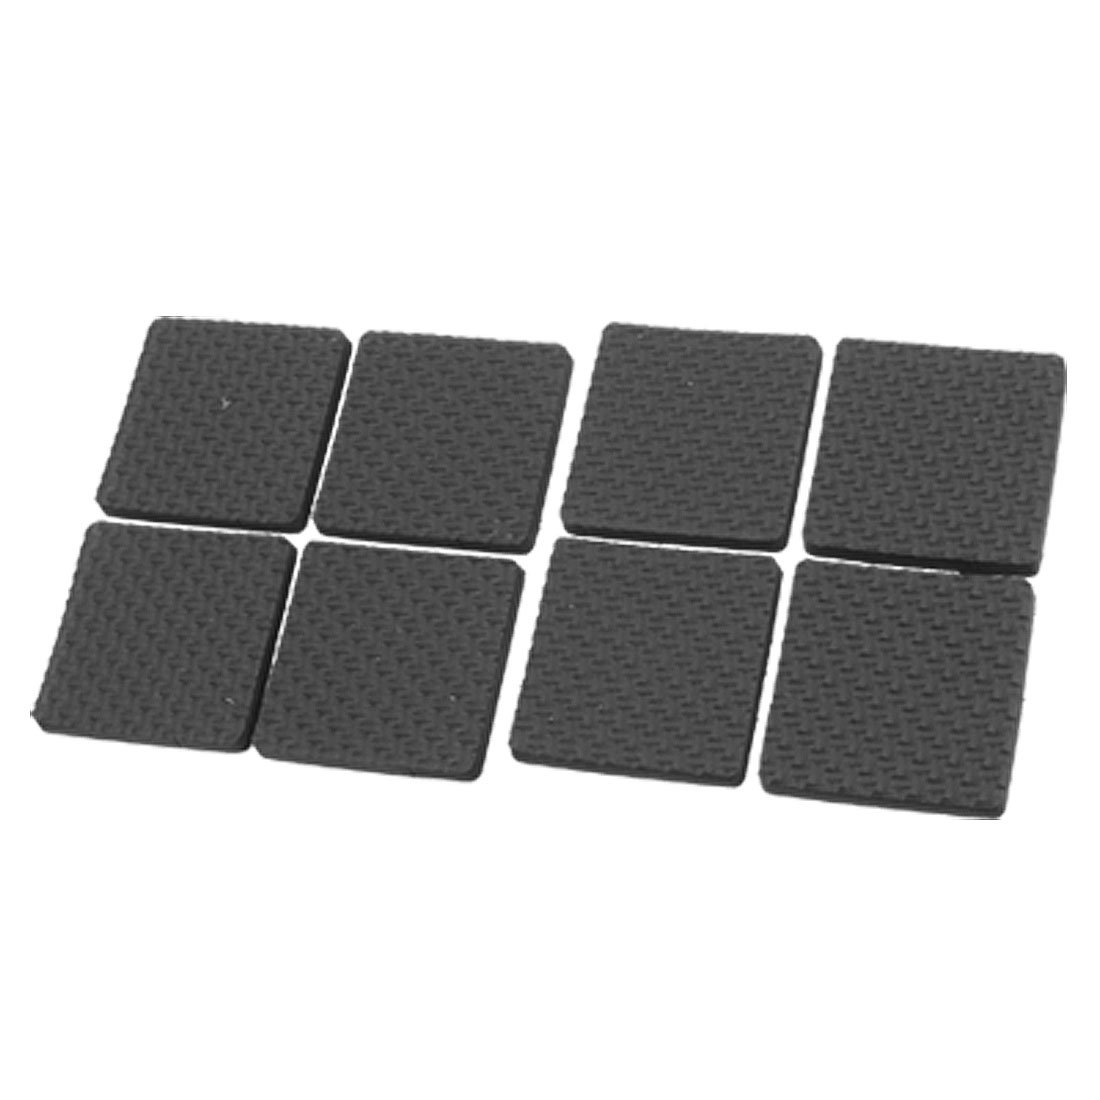 PHFU Wholesale Black Protective Furniture Table Chair Foot Square Pad<br><br>Aliexpress